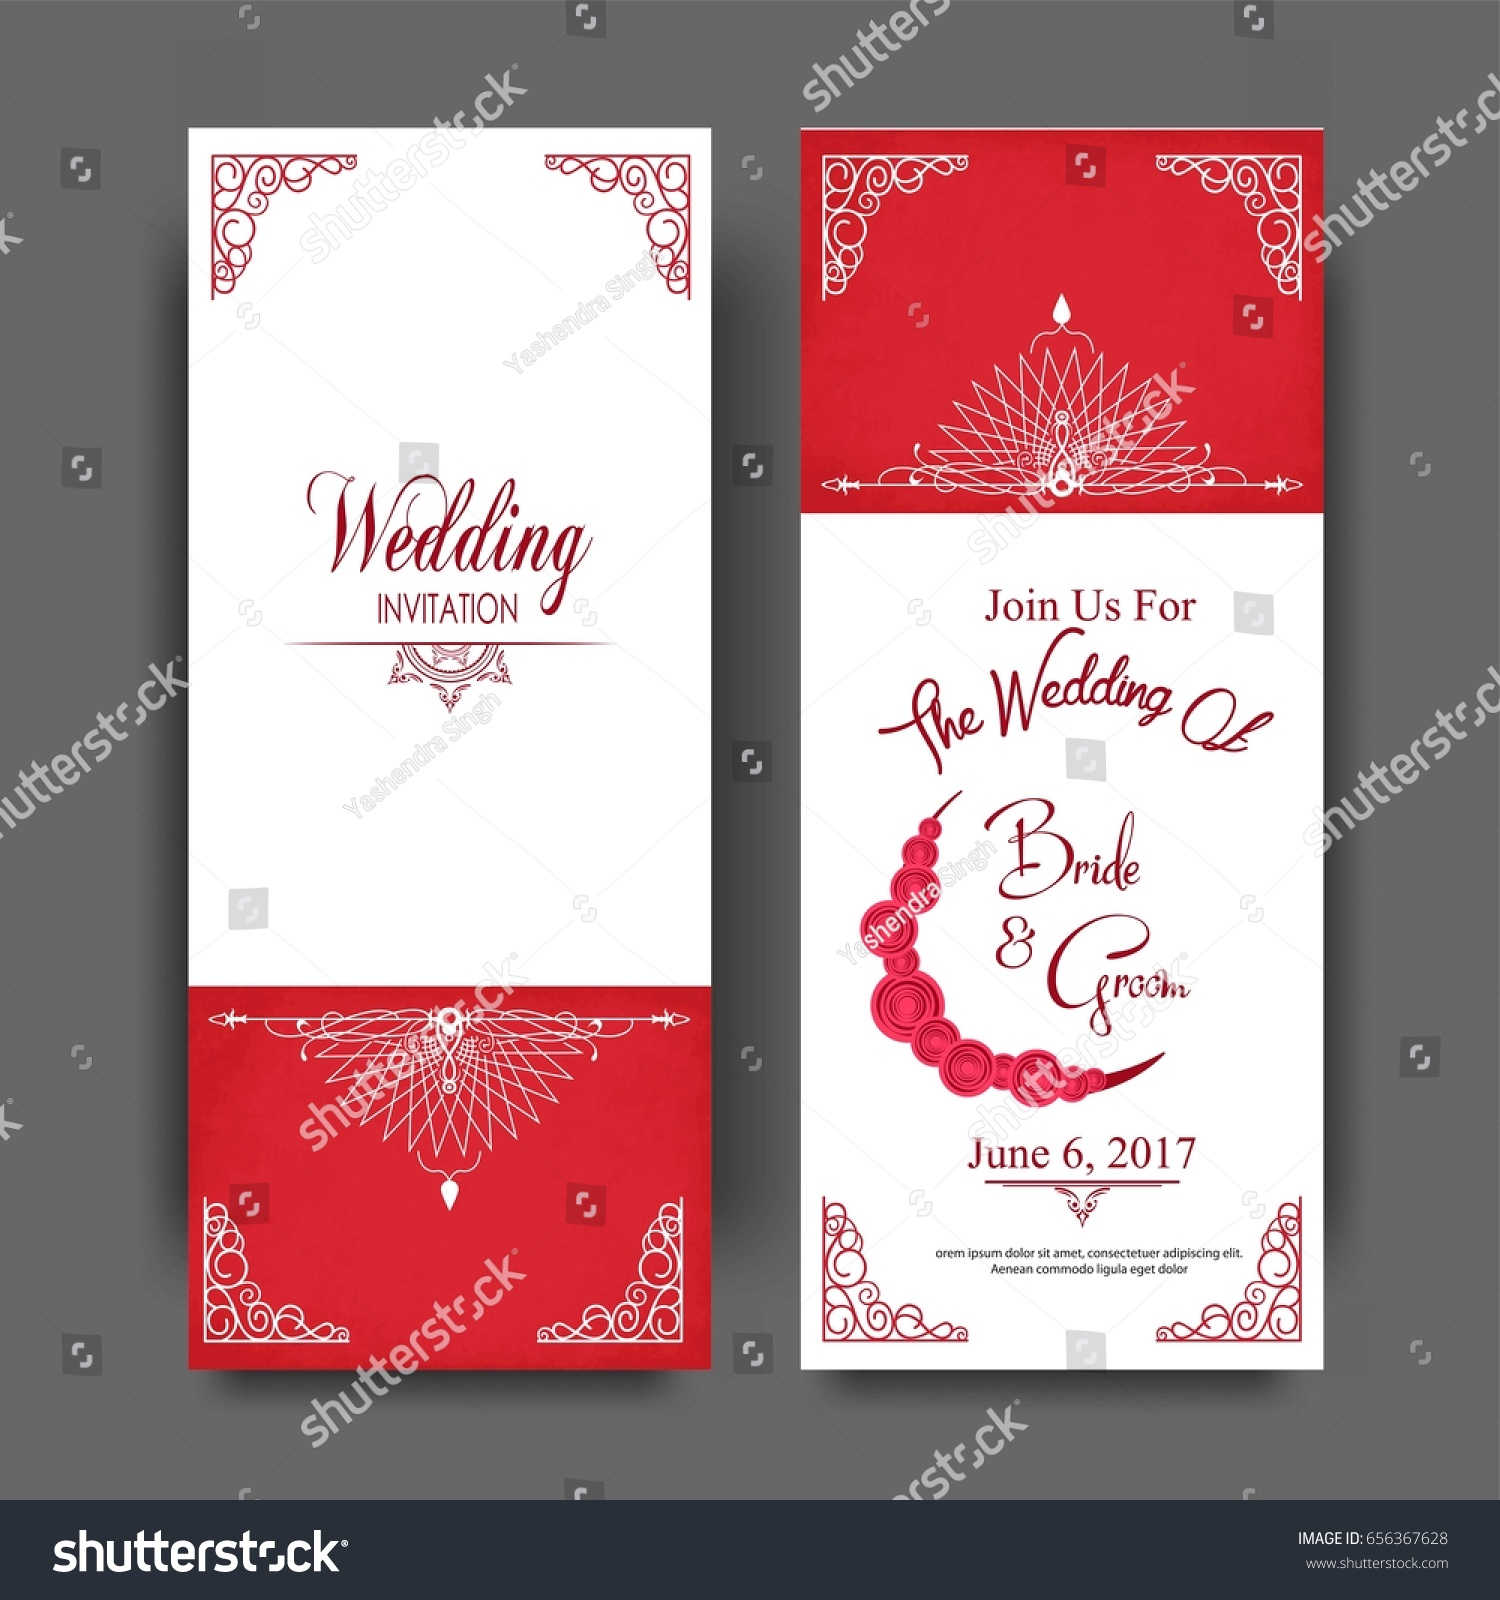 Wedding Invitation Card Muslim Community Stock Vector 656367628 ...